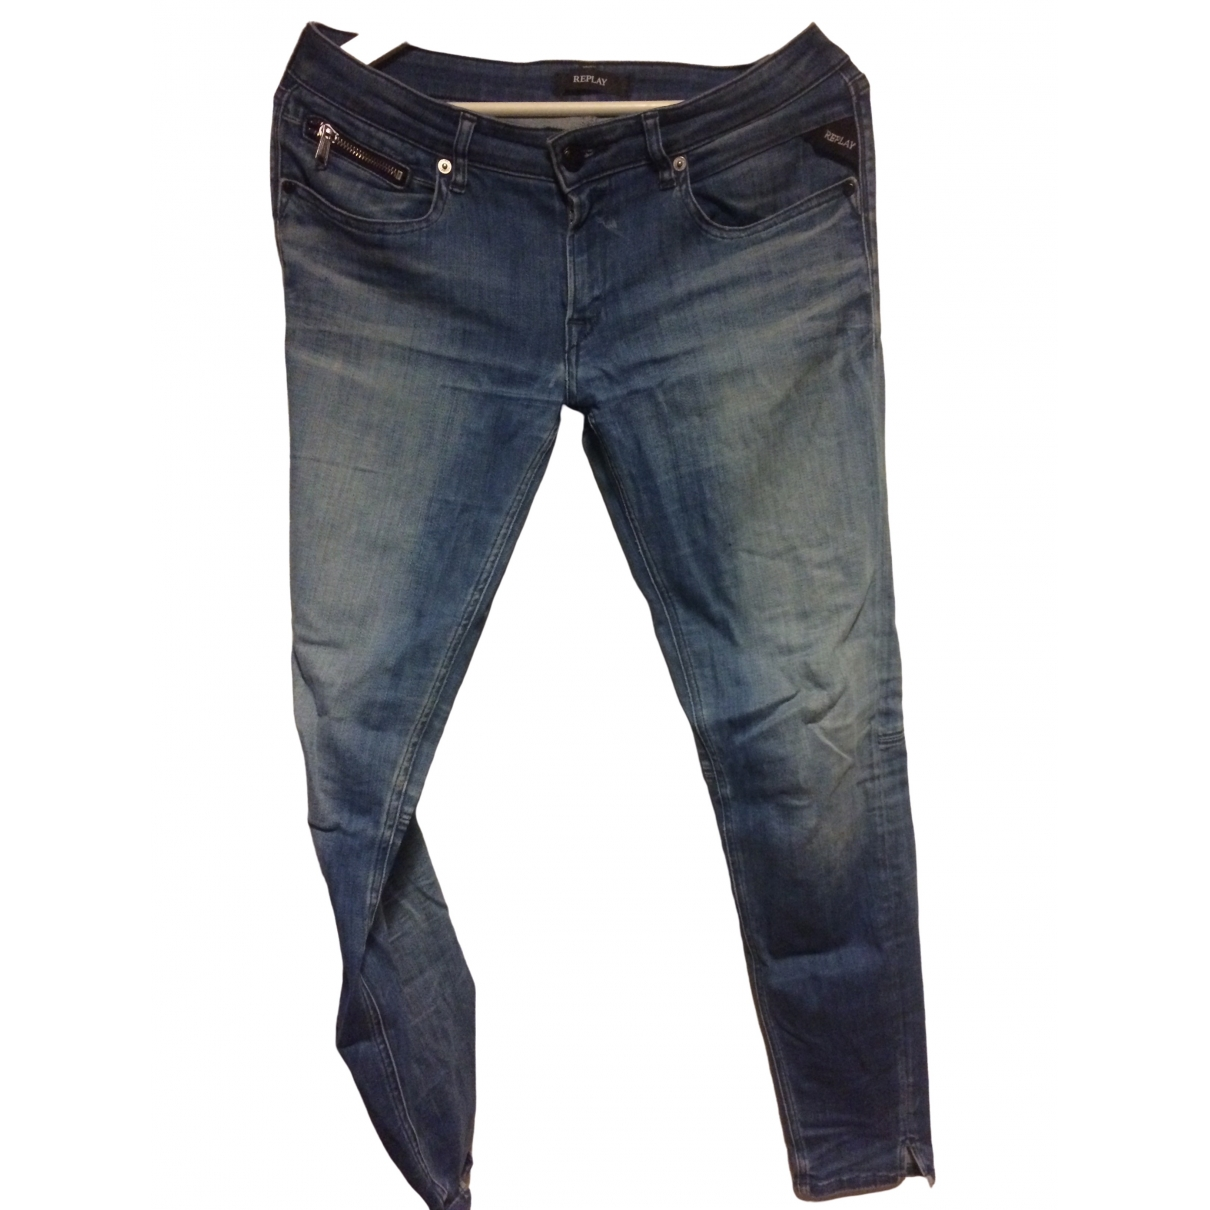 Replay \N Blue Denim - Jeans Jeans for Women 31 US